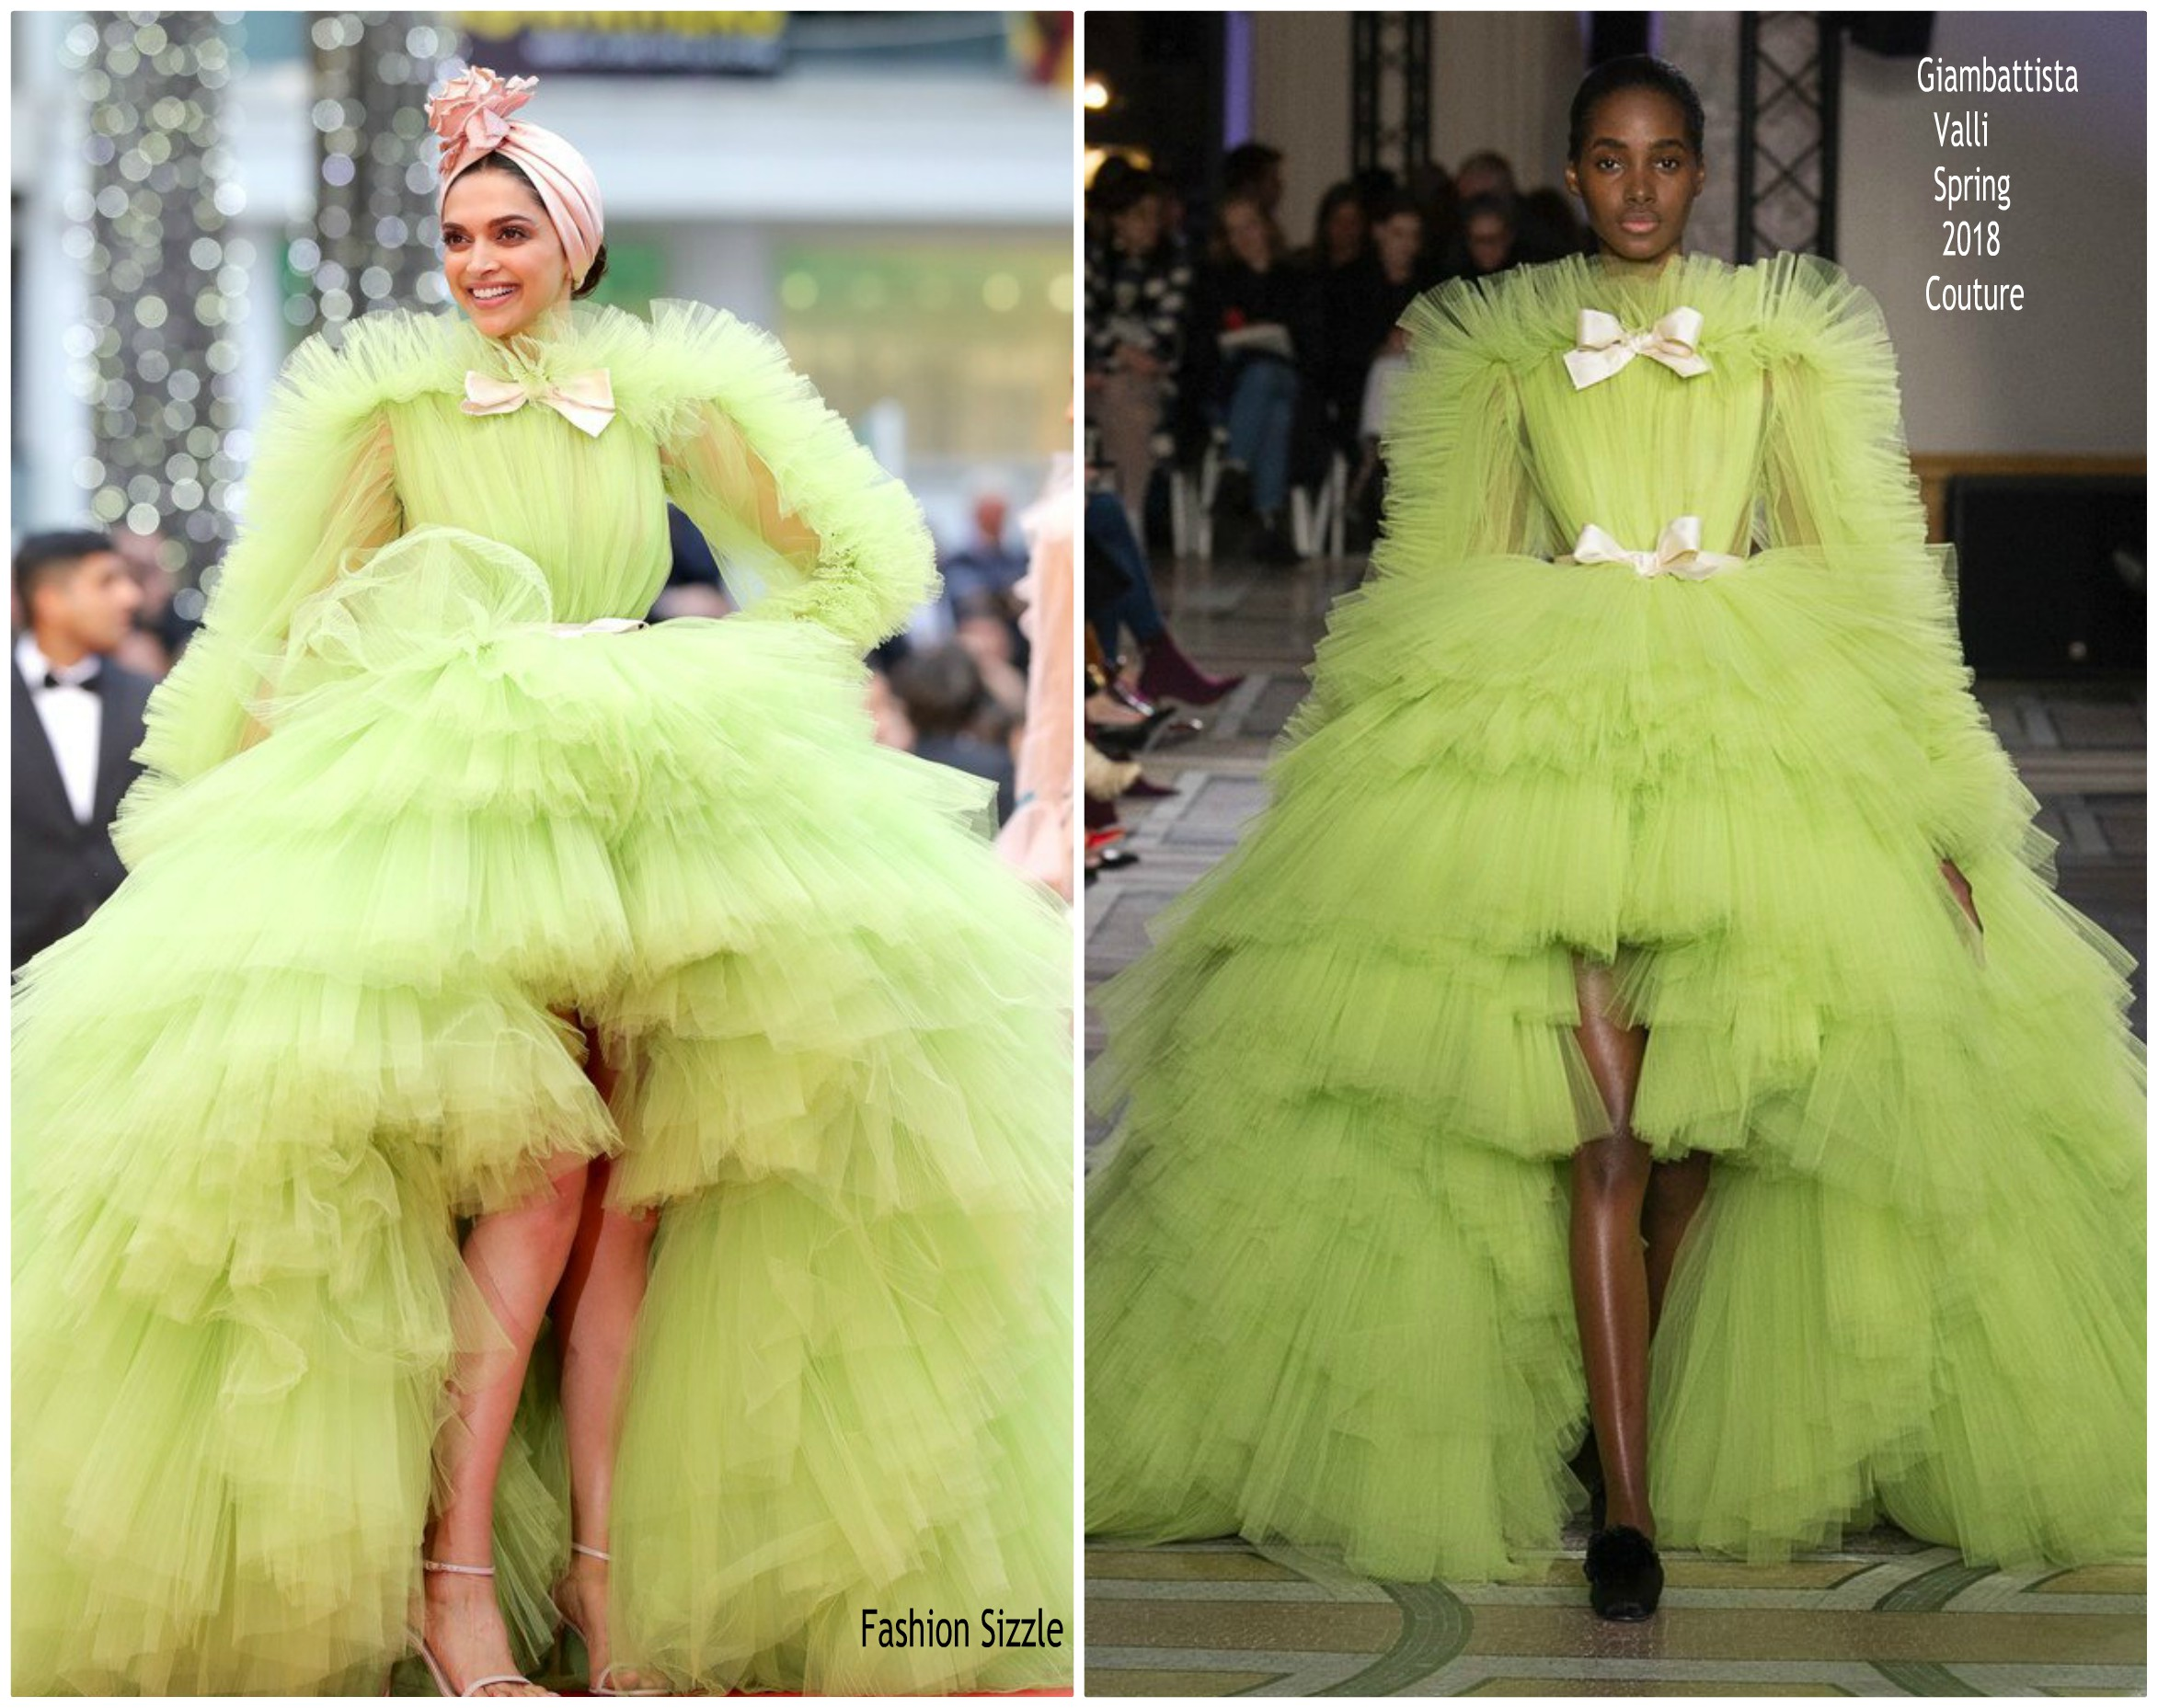 deepika-padukone-in-giambattista-valli-couture-pain-and-glory-dolor-y-gloria-douleur-et-glorie-cannes-film-festival-premiere